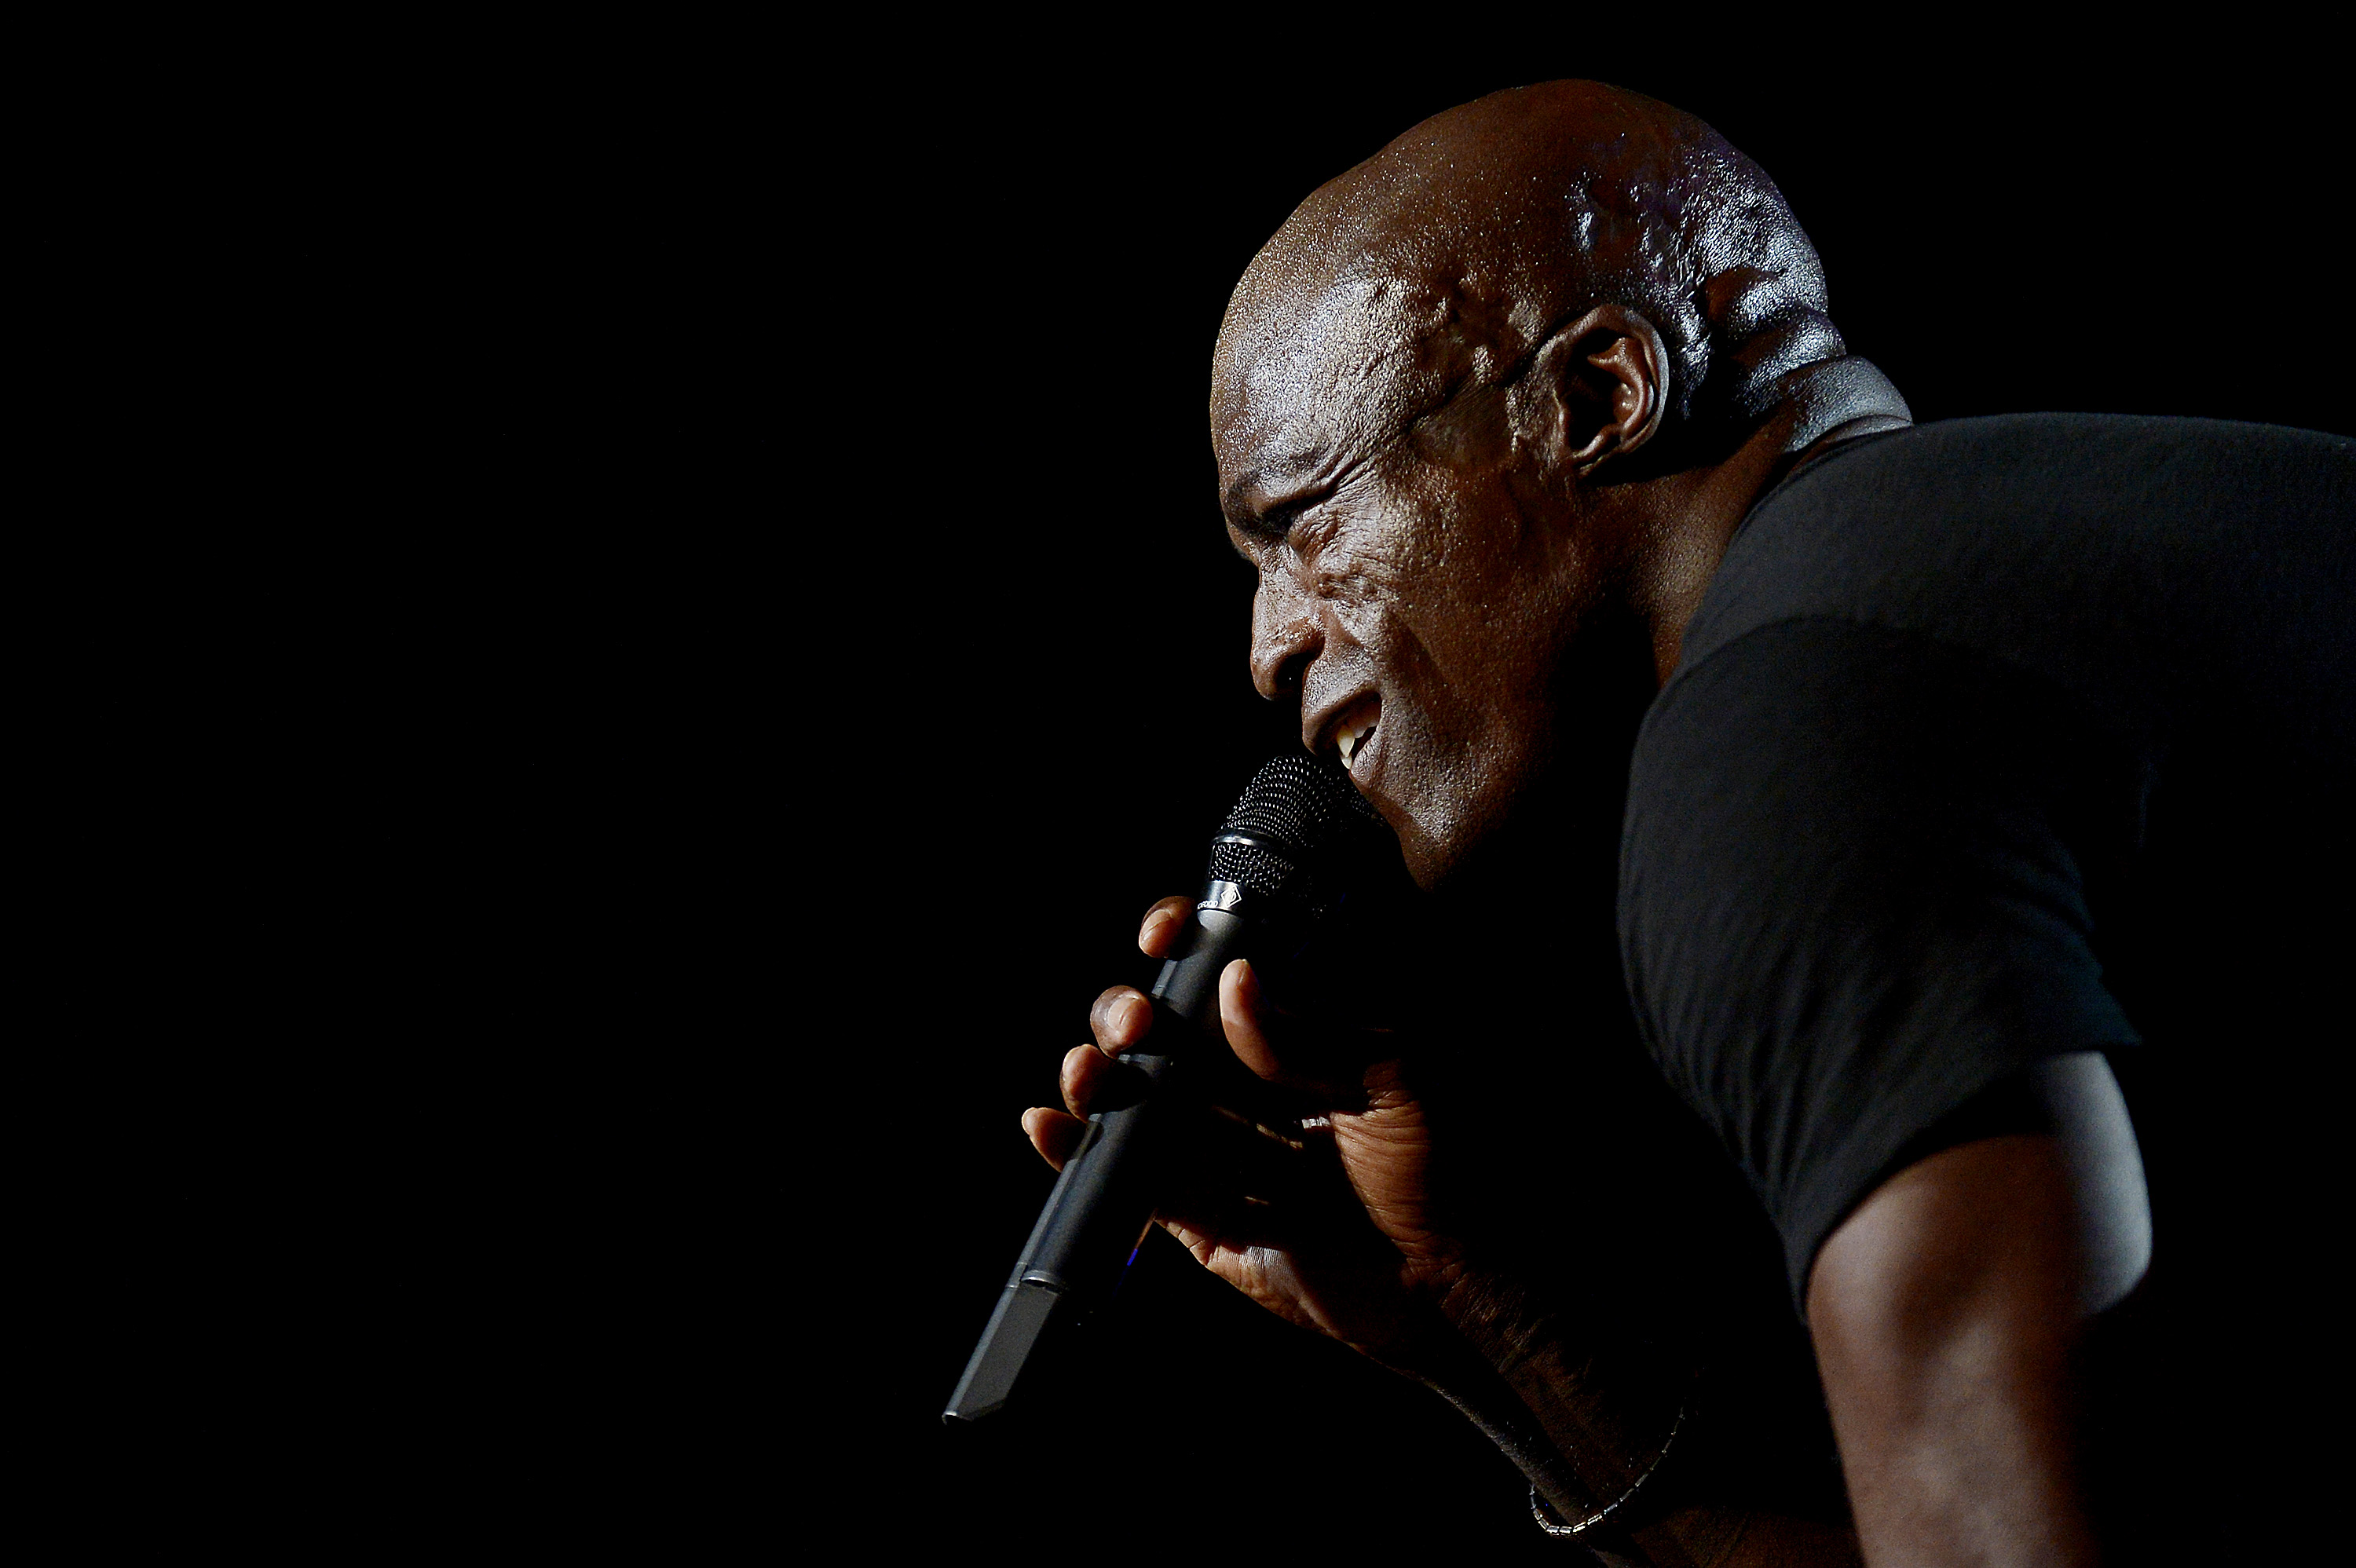 Musician Seal Face Scars, Seal Face Scarring, Discoid Lupus Erythematosus, What Happened to Seal's Face, Seal Face Scars Caused By, Was Seal Burned